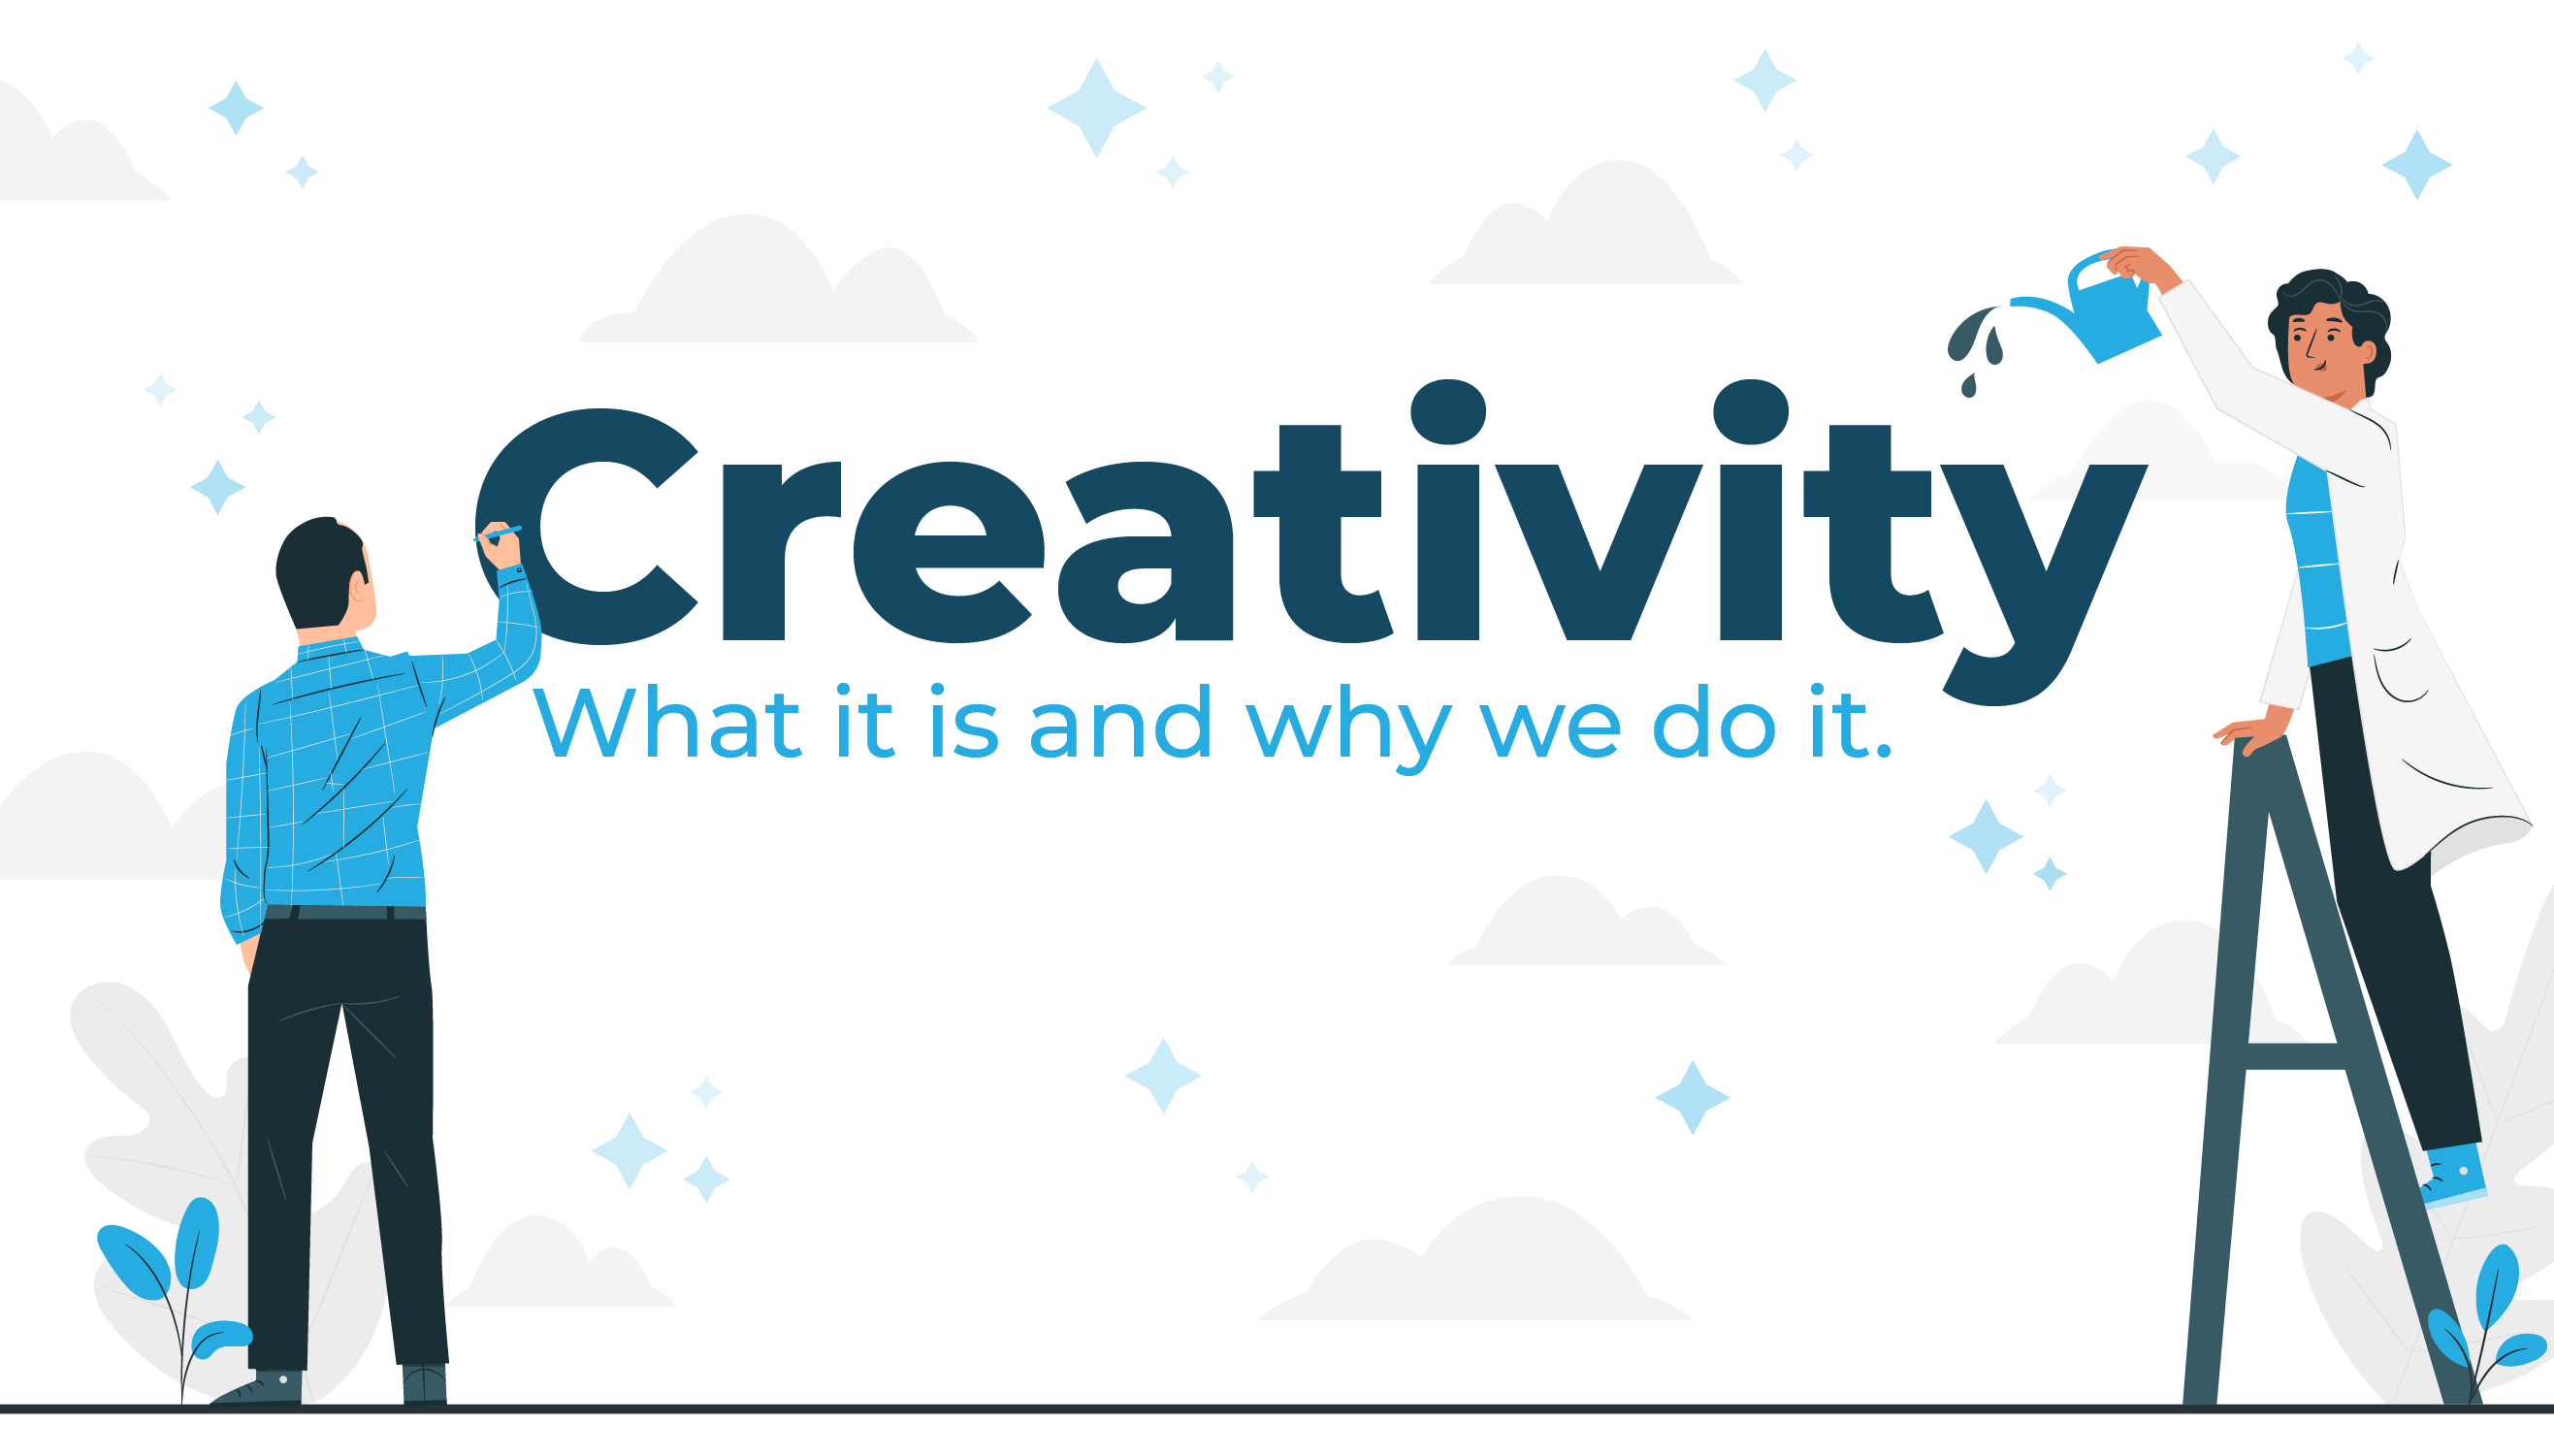 Creativity, what it is and why we do it!